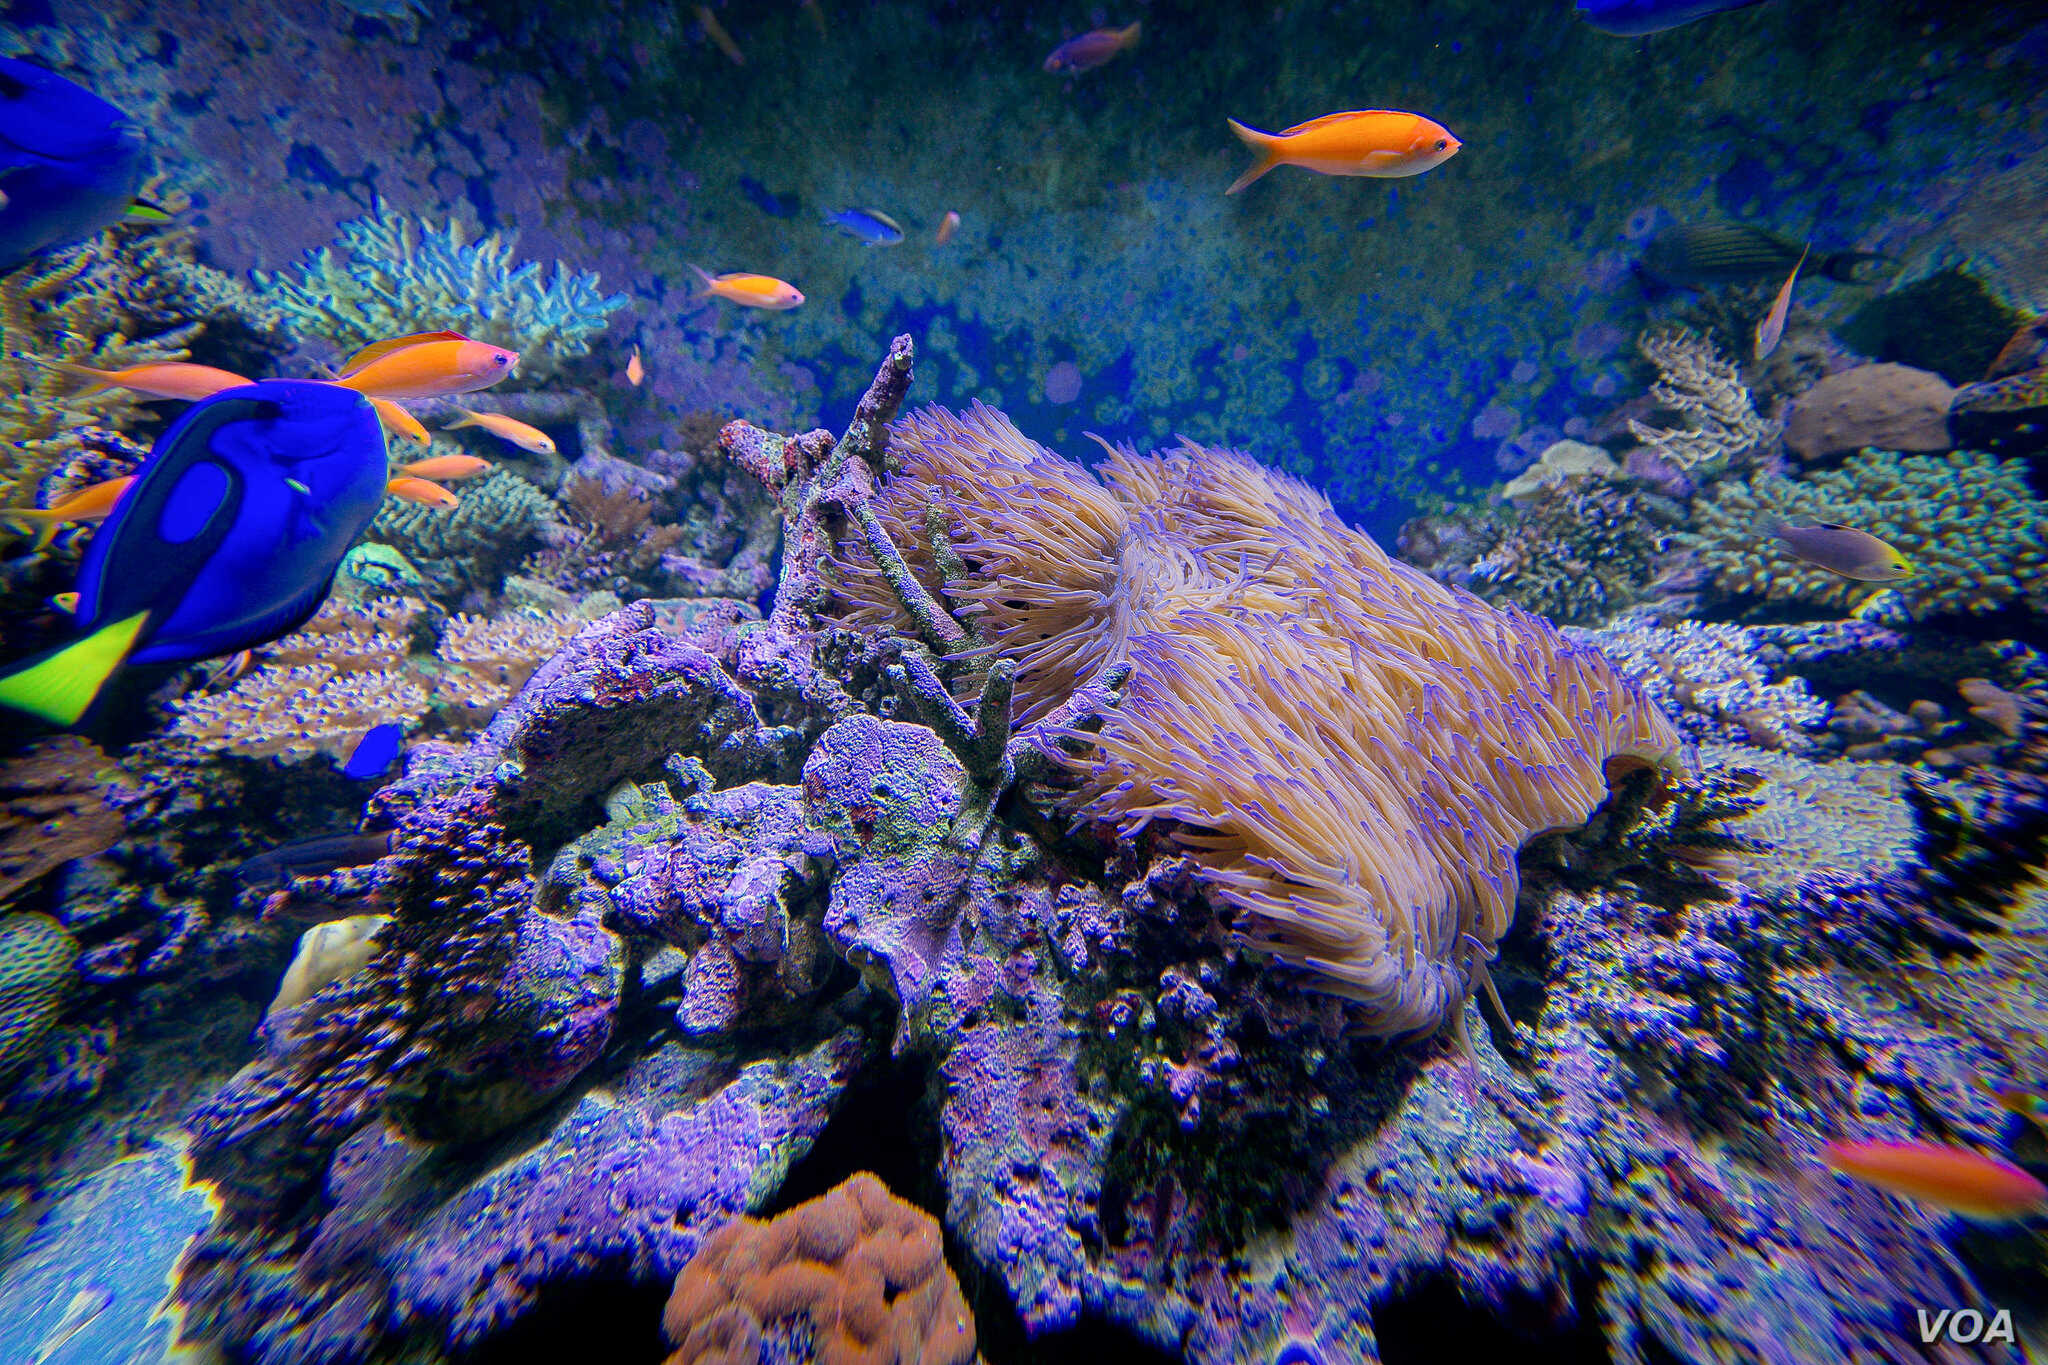 Live on shore reef coral in a of a state-of-the-art research marine aquarium complex (SeaSim) at the Australian Institute of Marine Science,Townsville, March 19, 2015. (Courtesy Image, DFAT / Patrick Hamilton).